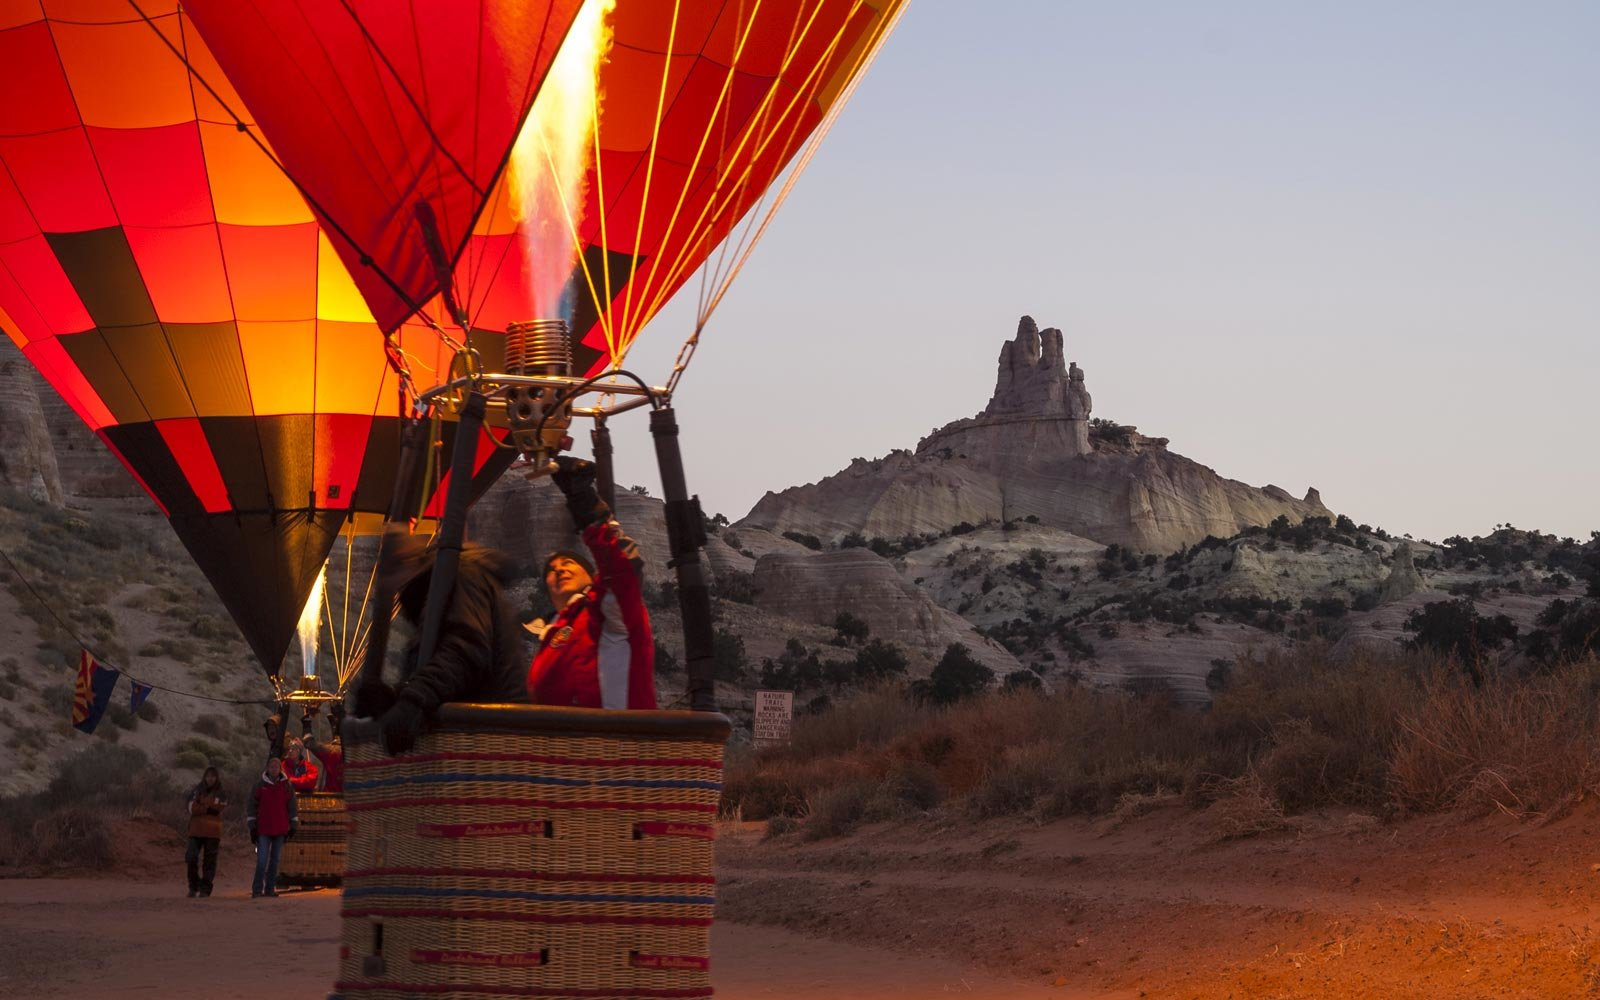 Hot Air balloons at dawn glow with Church Rock in background; 25th Annual Red Rock Balloon Rally at Red Rock State Park, Gallup, New Mexico.